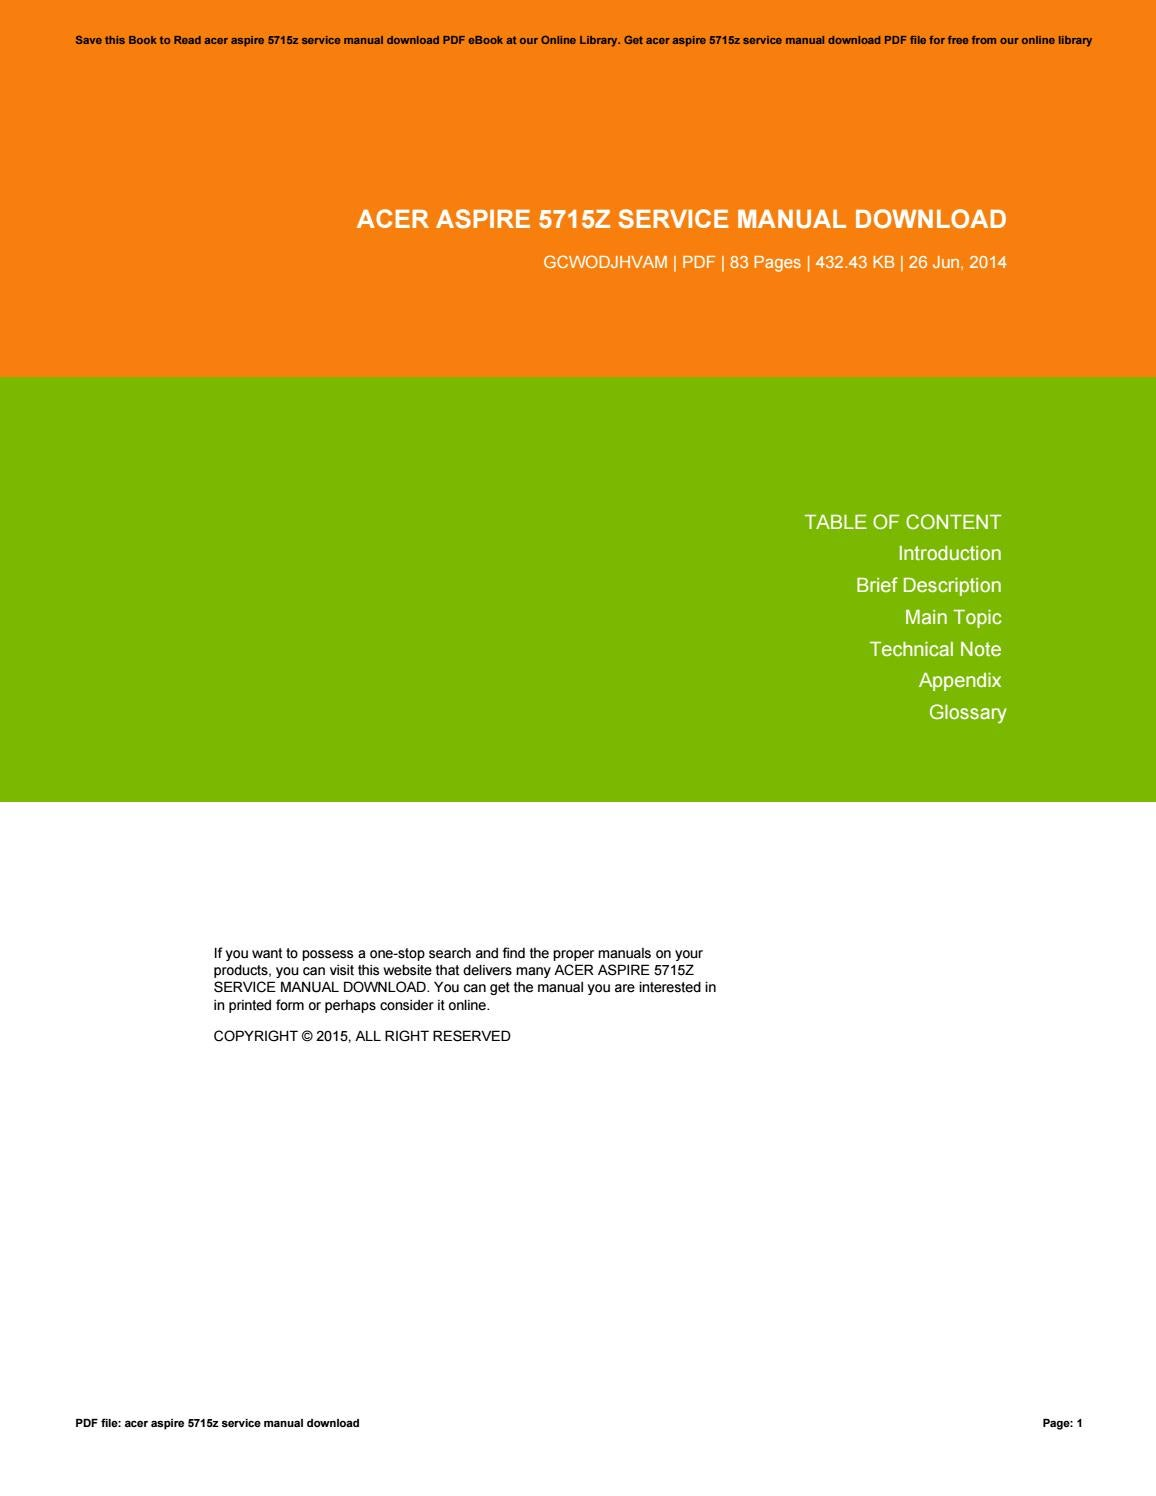 acer aspire 5715z service manual download by angelabrown2952 issuu rh issuu com Acer Aspire Laptop acer aspire 5715z service manual pdf